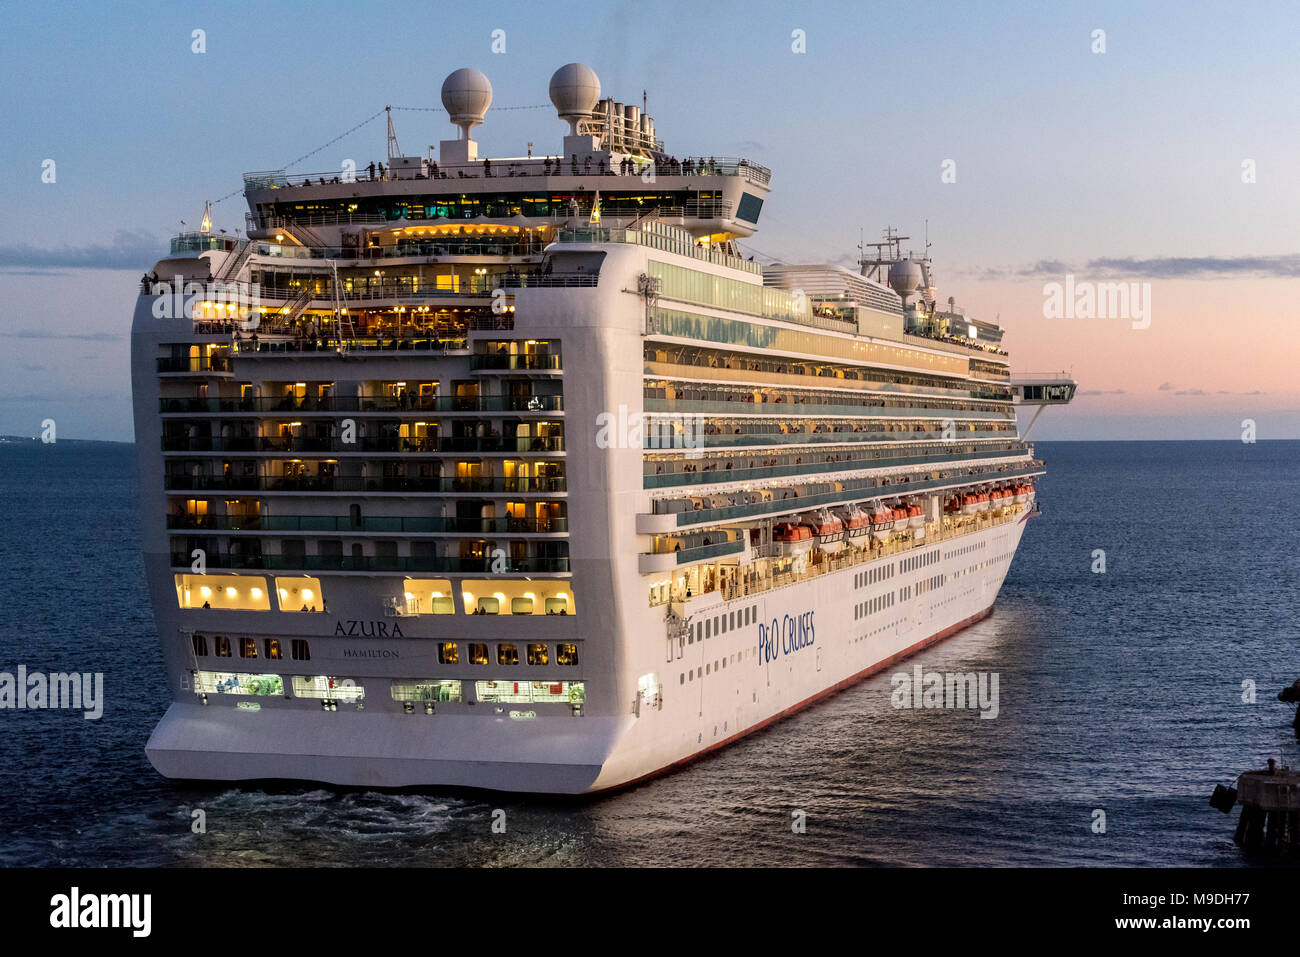 P&O Cruise Ship Azura leaving Basseterre on Saint Kitts as the sun goes down on a warm evening - Stock Image